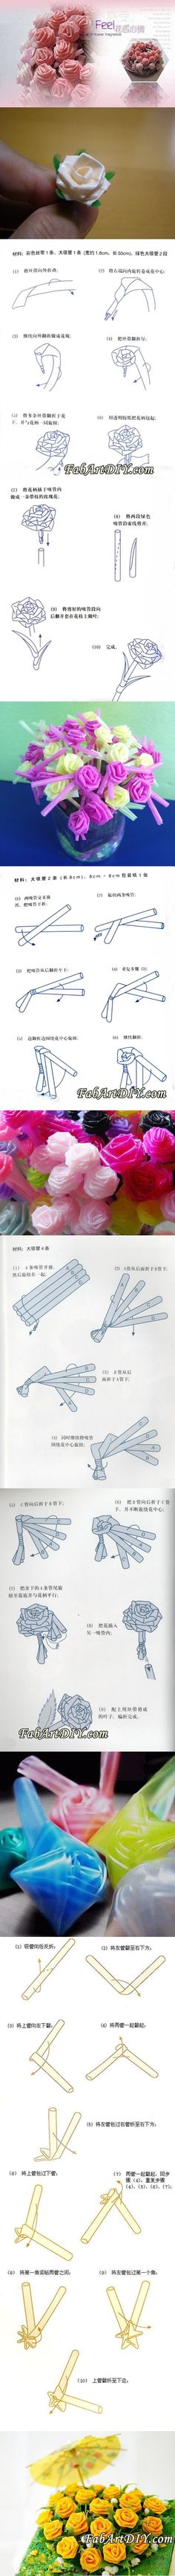 DIY Roses from Drinking Straw in 4 Ways | www.FabArtDIY.com LIKE Us on Facebook ==> https://www.facebook.com/FabArtDIY